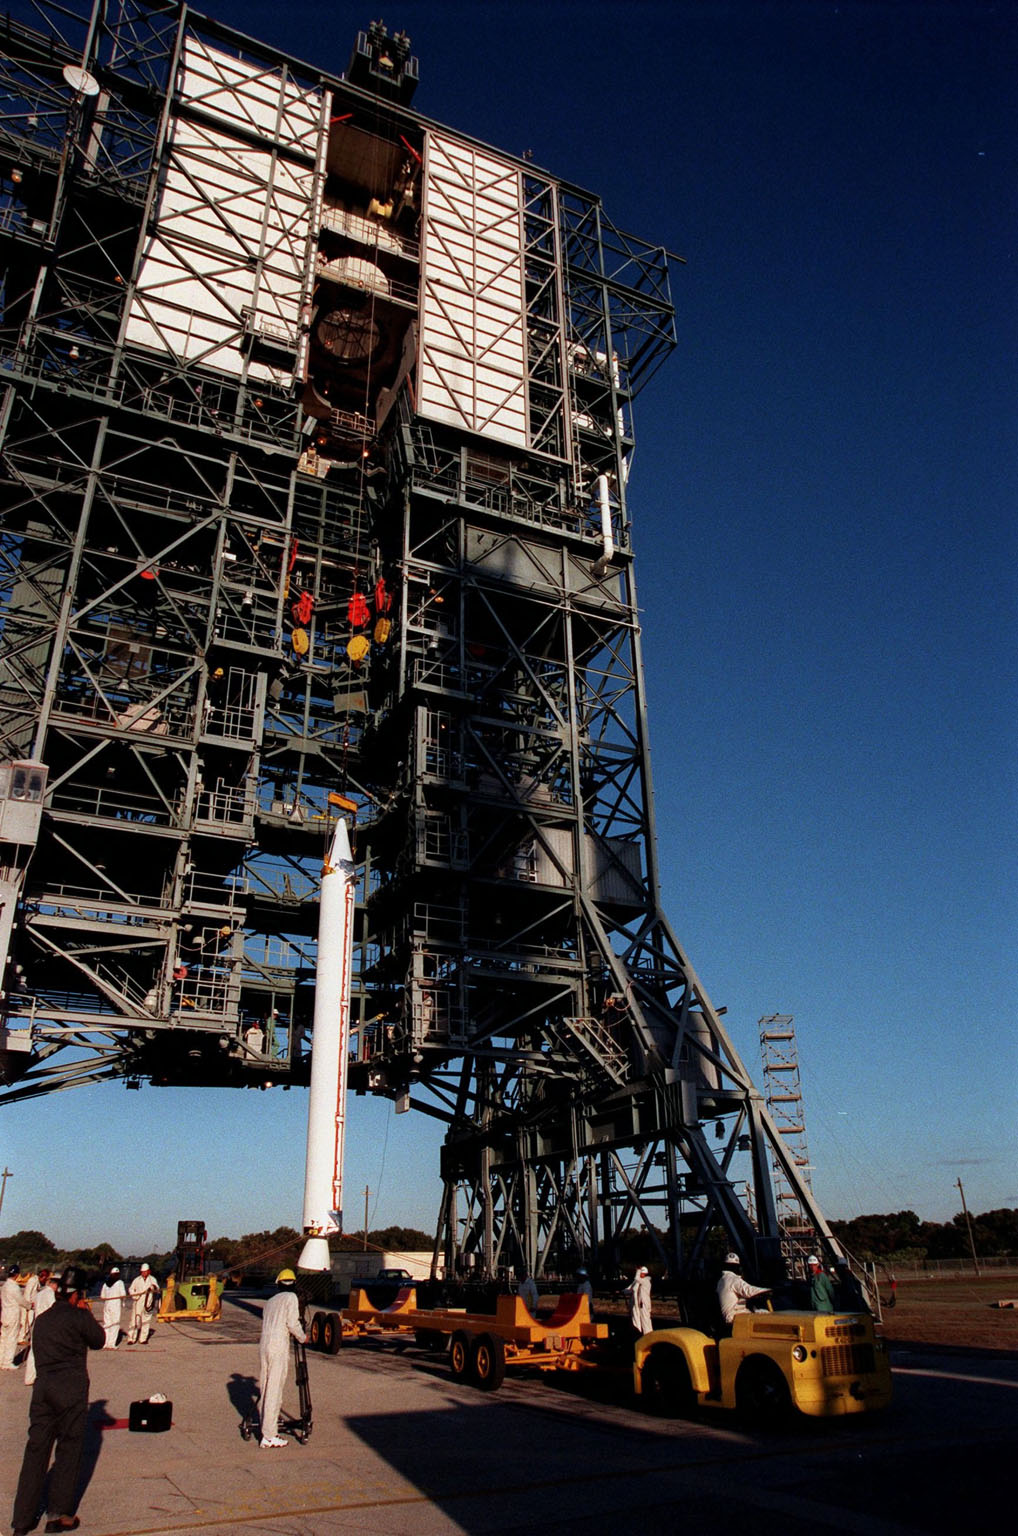 A fourth and final Solid Rocket Booster, to be mated with a Boeing Delta II rocket, starts its lift up the tower at Pad 17A, Cape Canaveral Air Station. The rocket will carry the Stardust satellite into space for a close encounter with the comet Wild 2 in January 2004. Using a medium called aerogel, Stardust will capture comet particles flying off the nucleus of the comet, plus collect interstellar dust for later analysis. The collected samples will return to Earth in a Sample Return Capsule to be jettisoned as Stardust swings by Earth in January 2006. Stardust is scheduled to be launched on Feb. 6, 1999